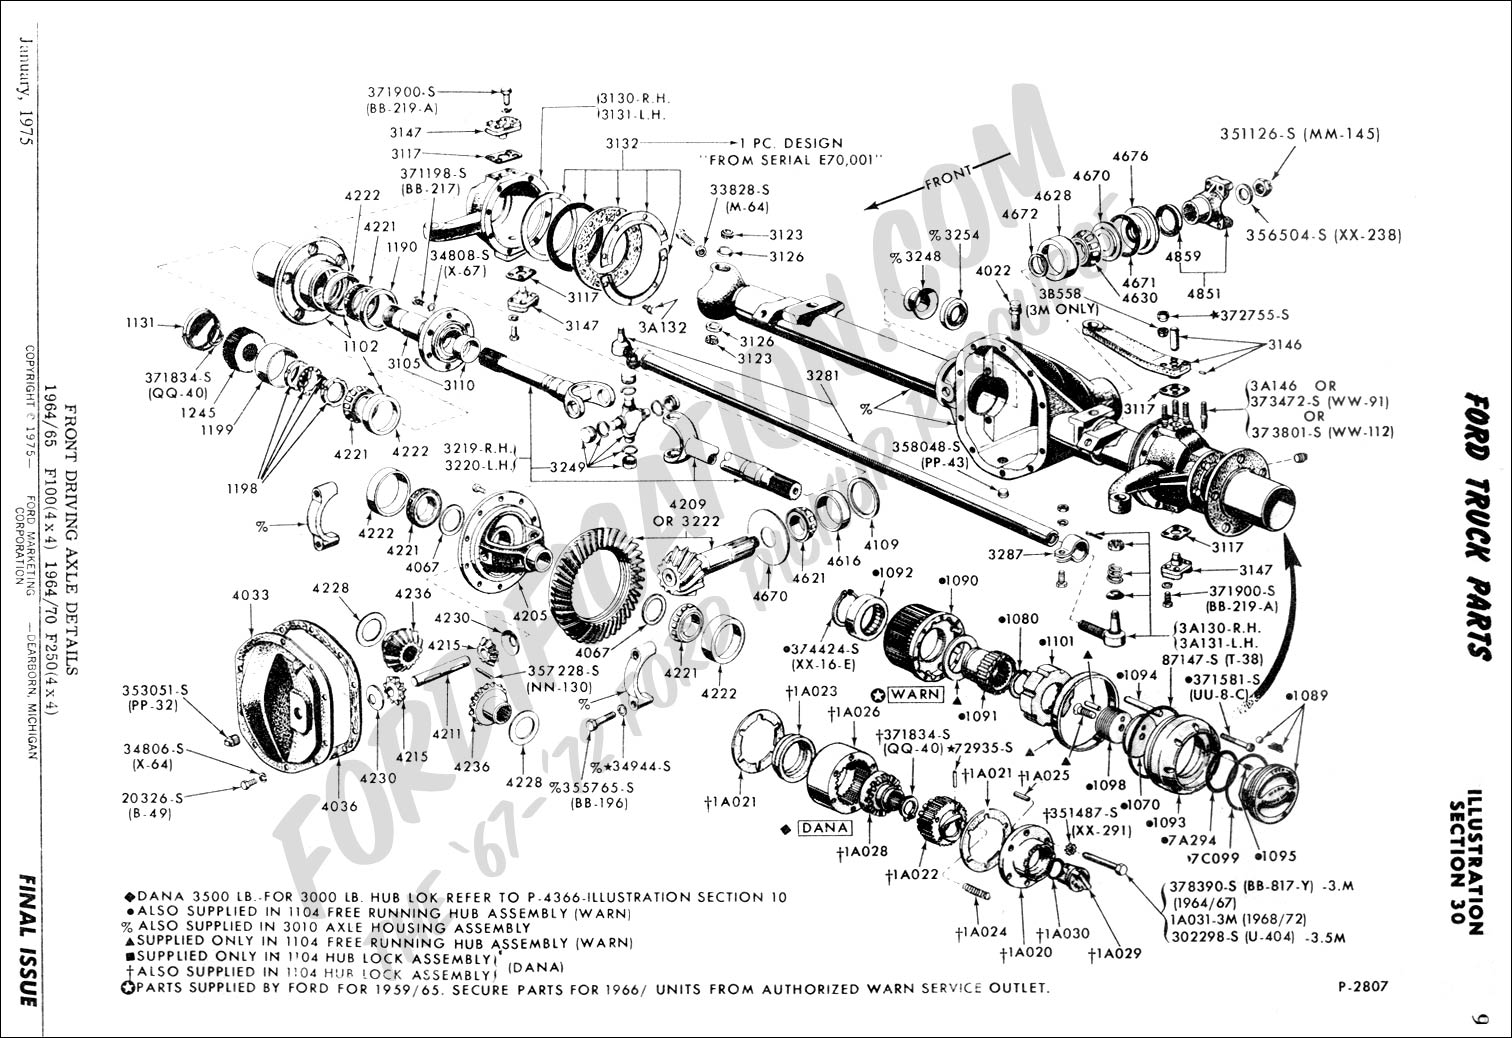 Ford F 150 Radio Wiring Diagram For 1987 F150 Parts 2010 Data 2008 Blogs 1995